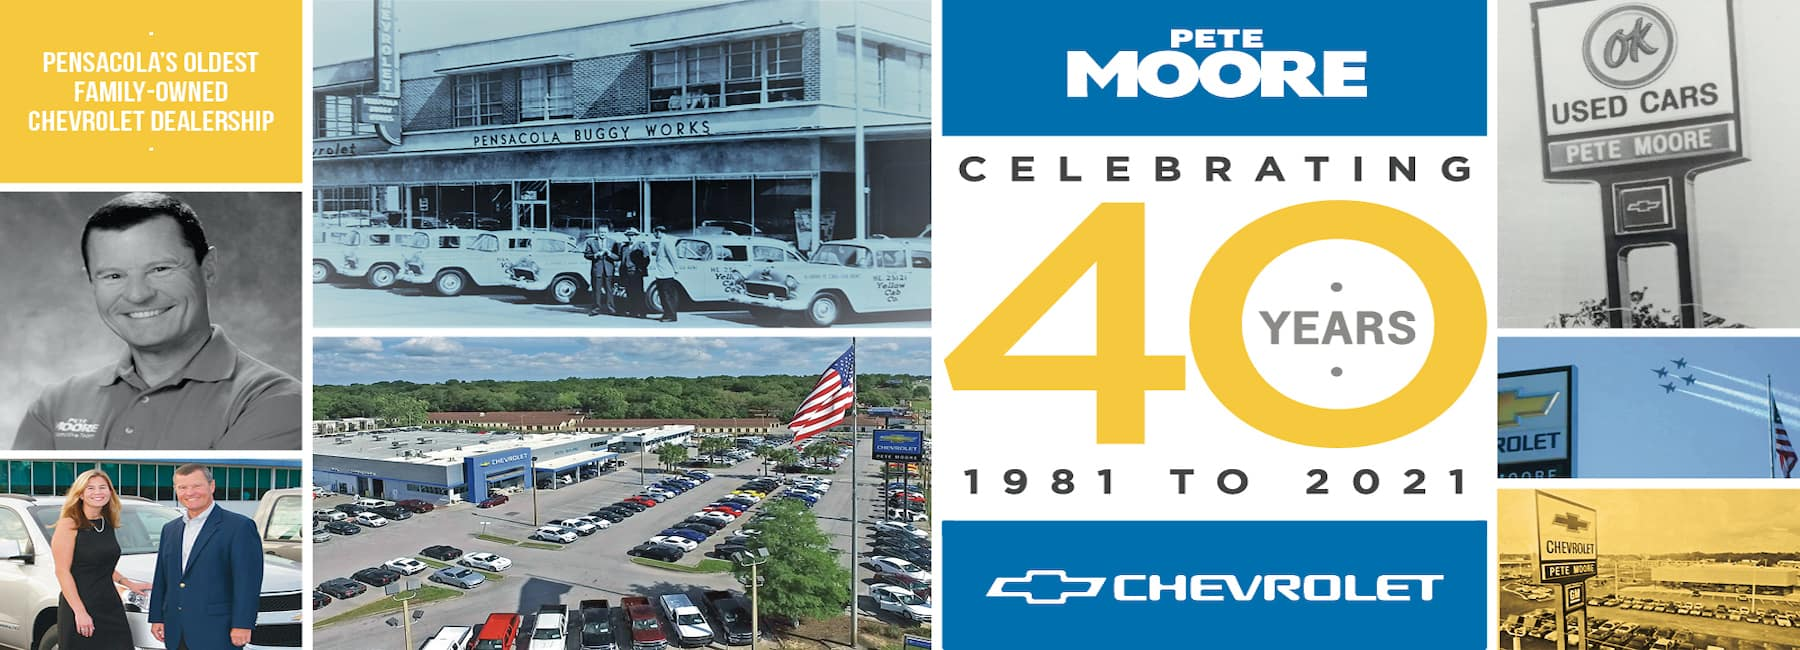 celebrating 40 years at Pete Moore Chevrolet